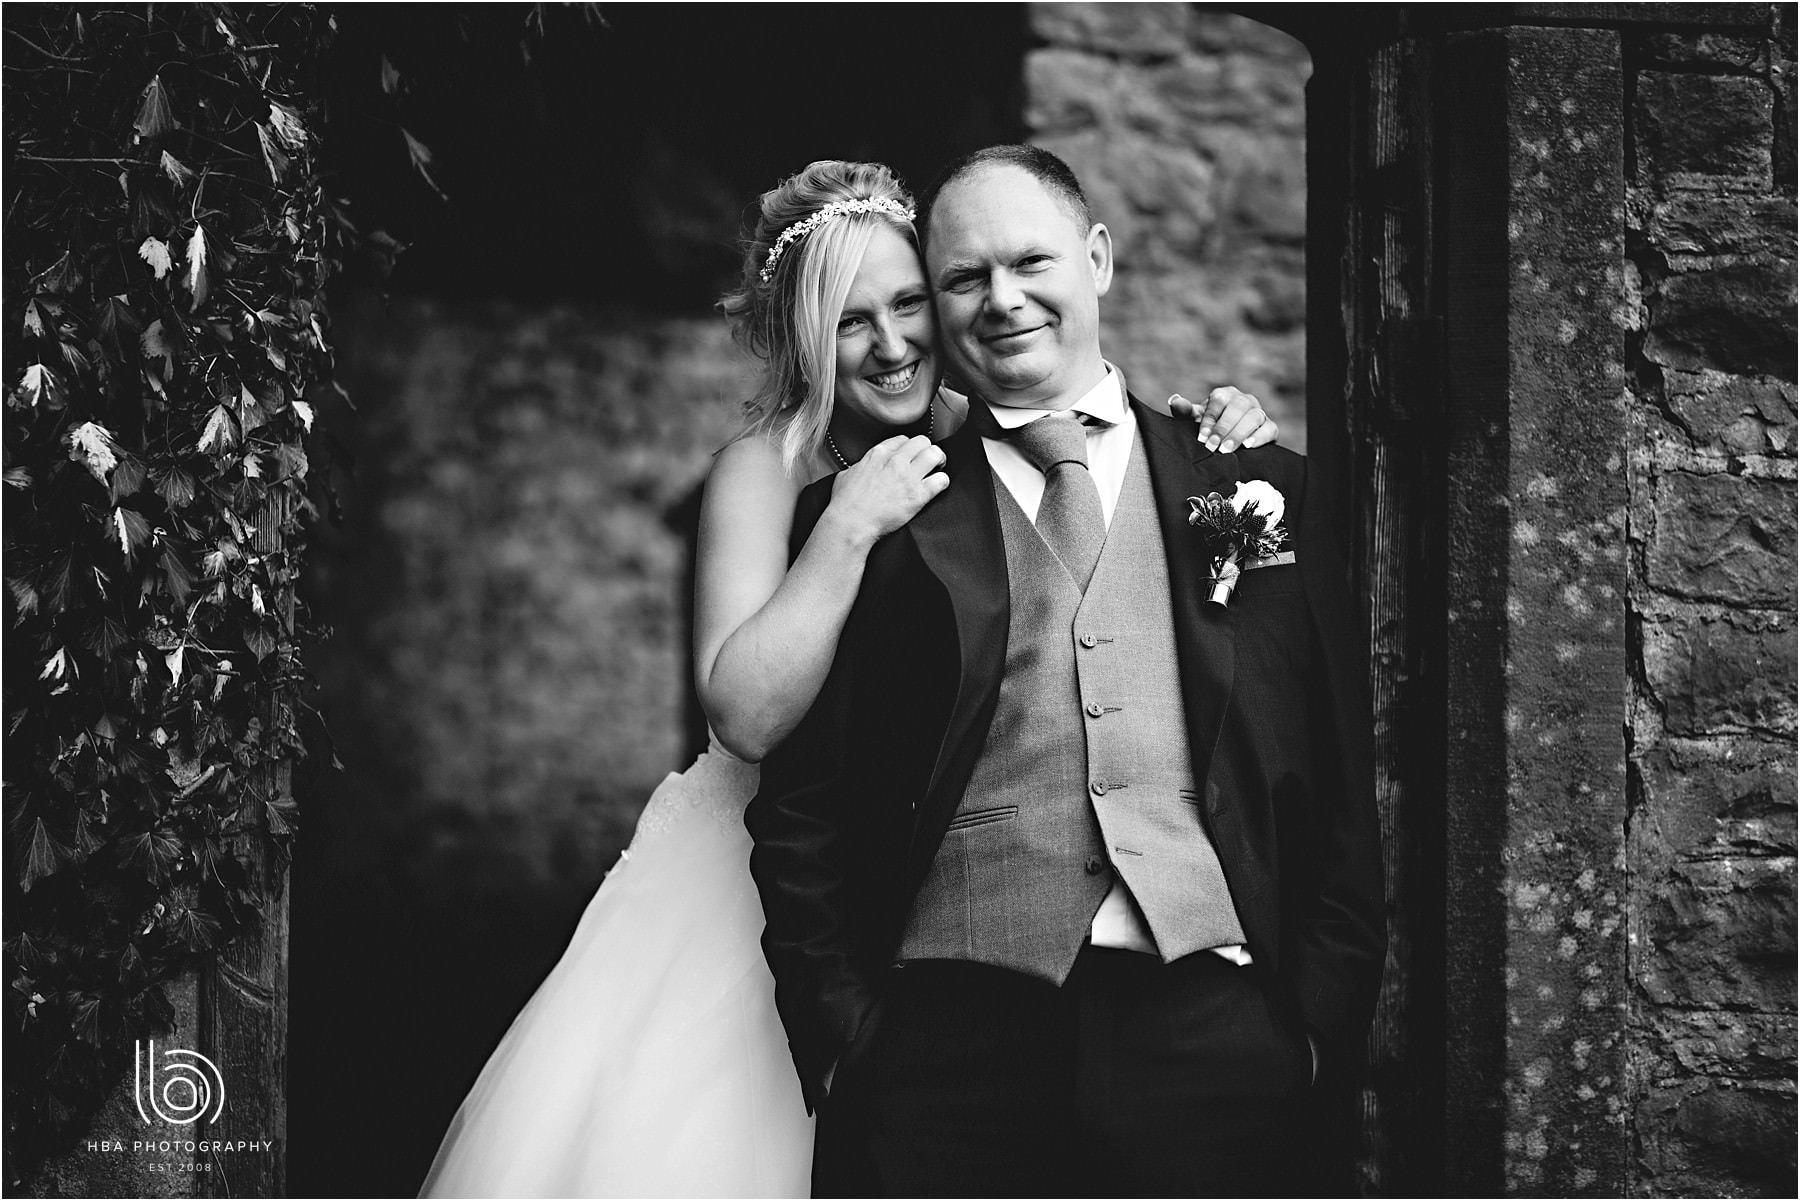 The bride and groom looking happy